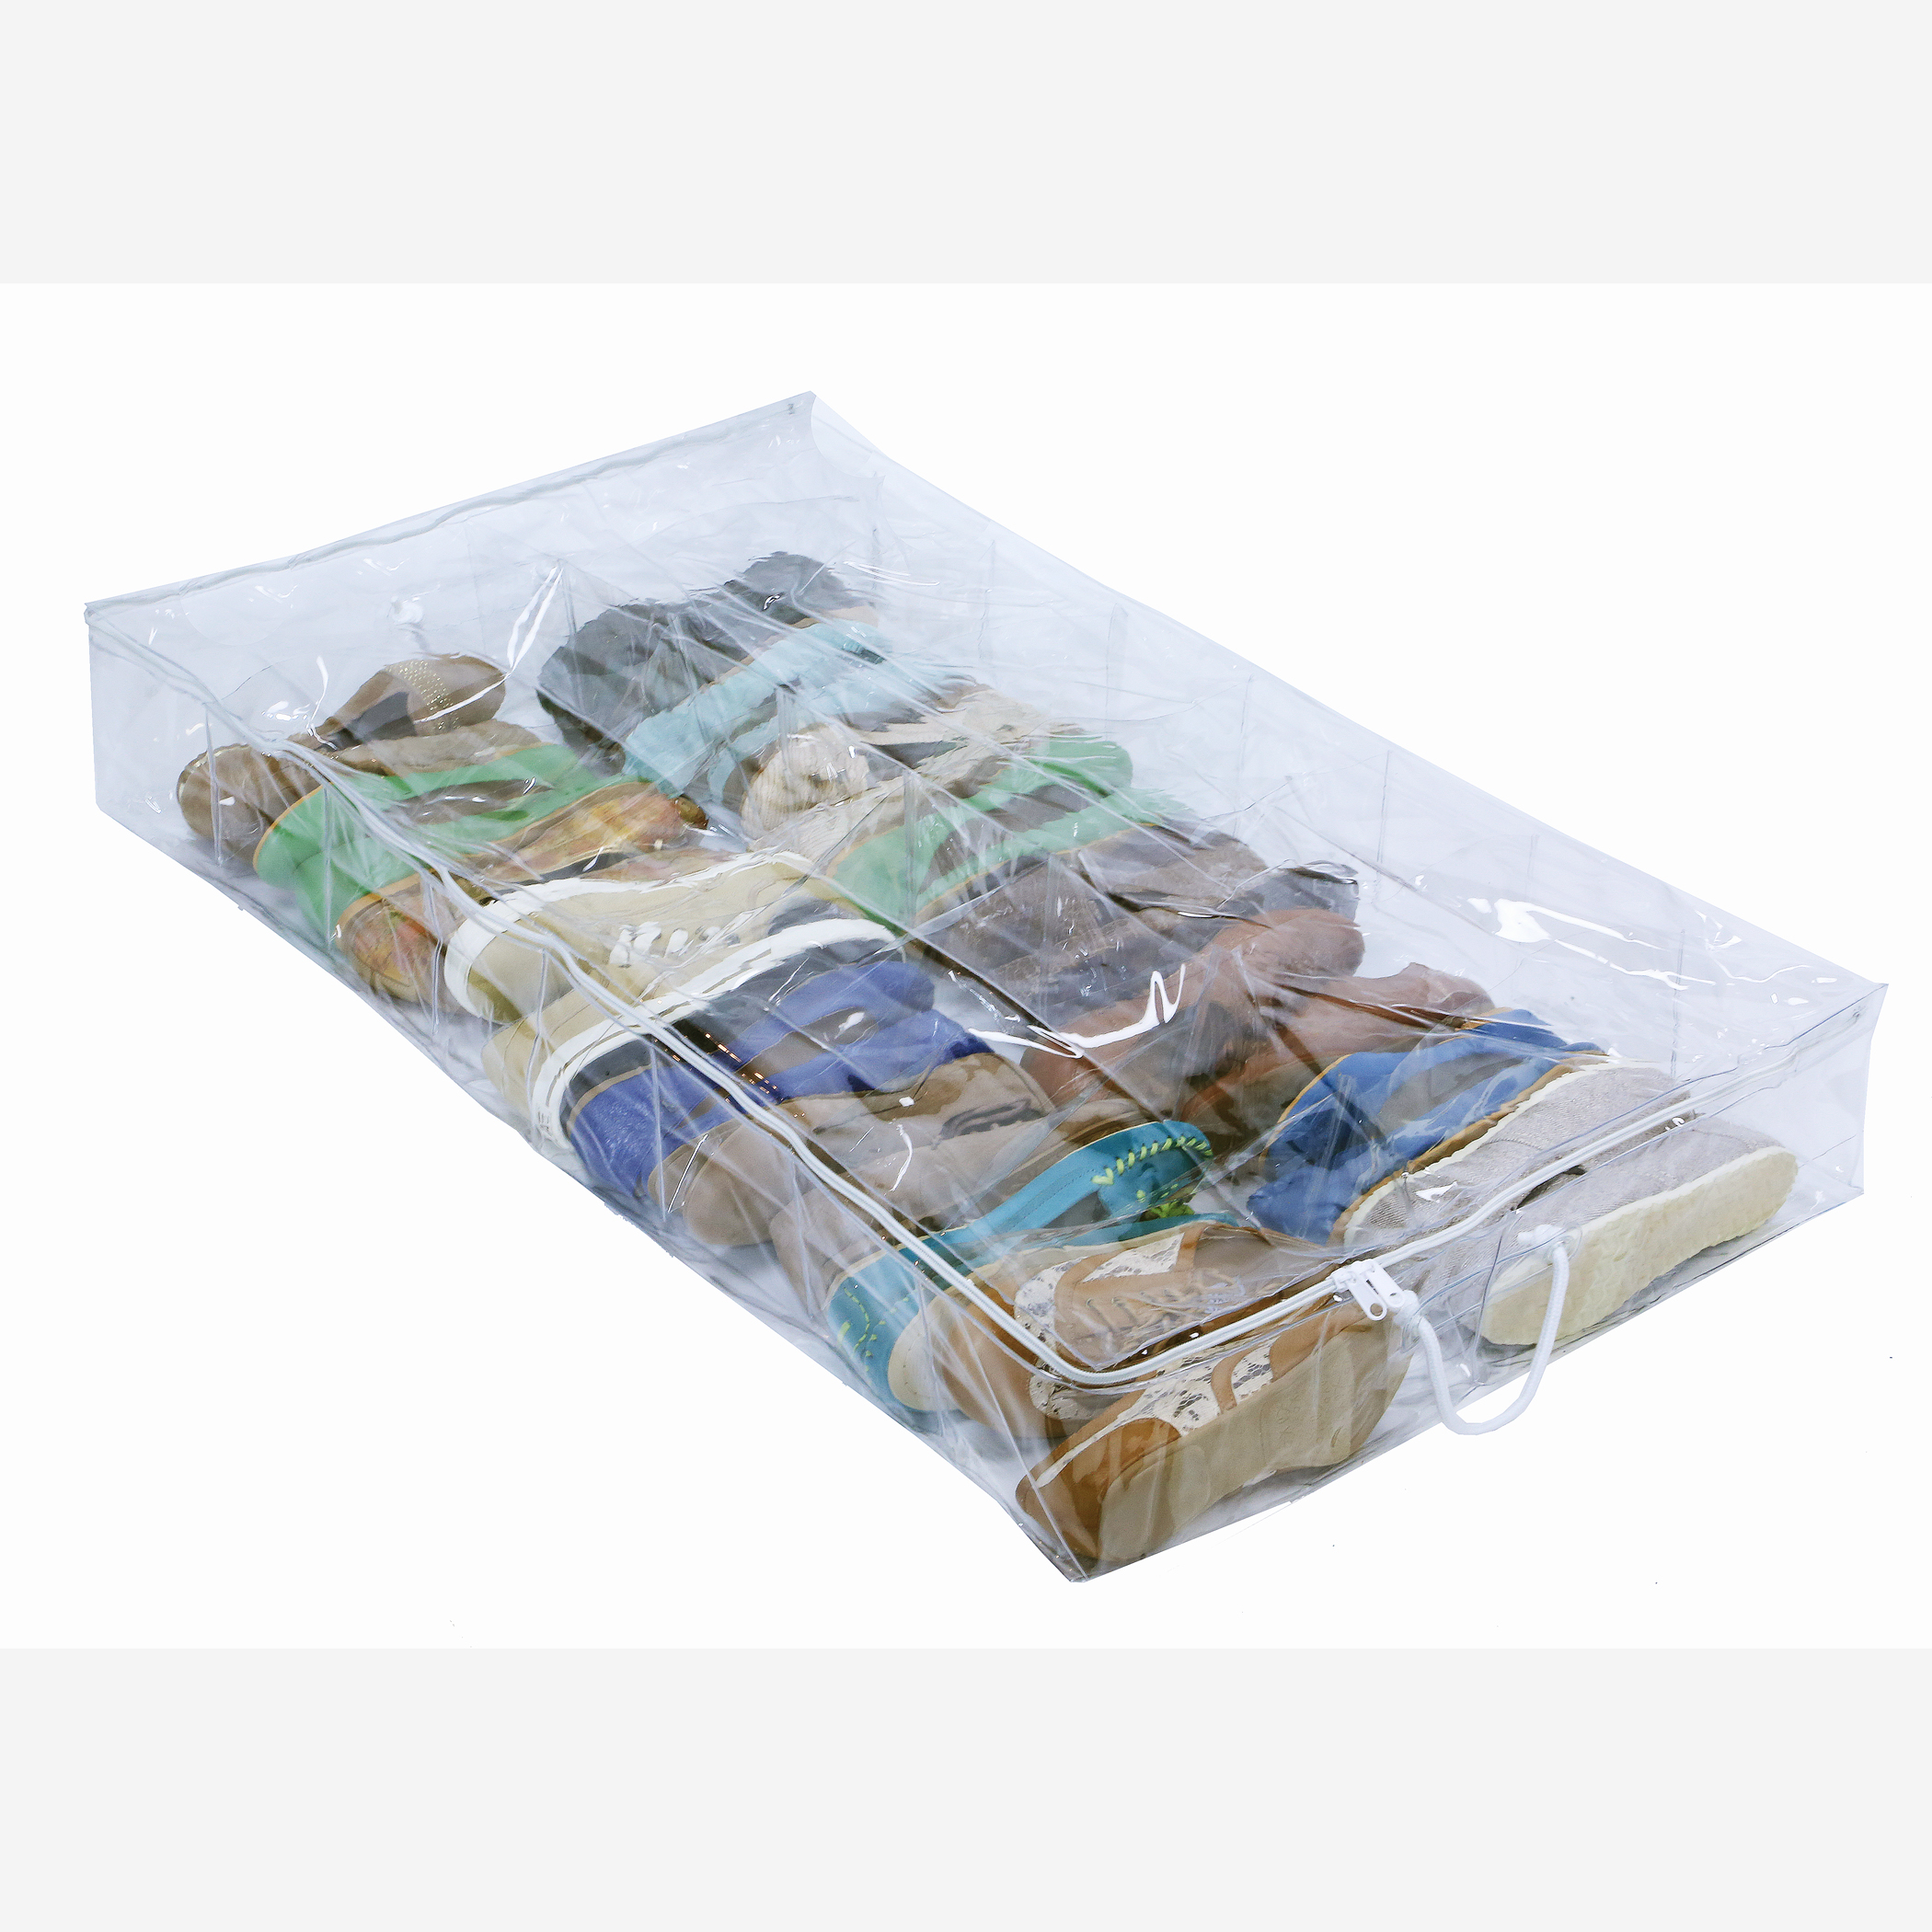 Richards Homewares Clear Vinyl Storage 16 Compartment Underbed Shoe Chest